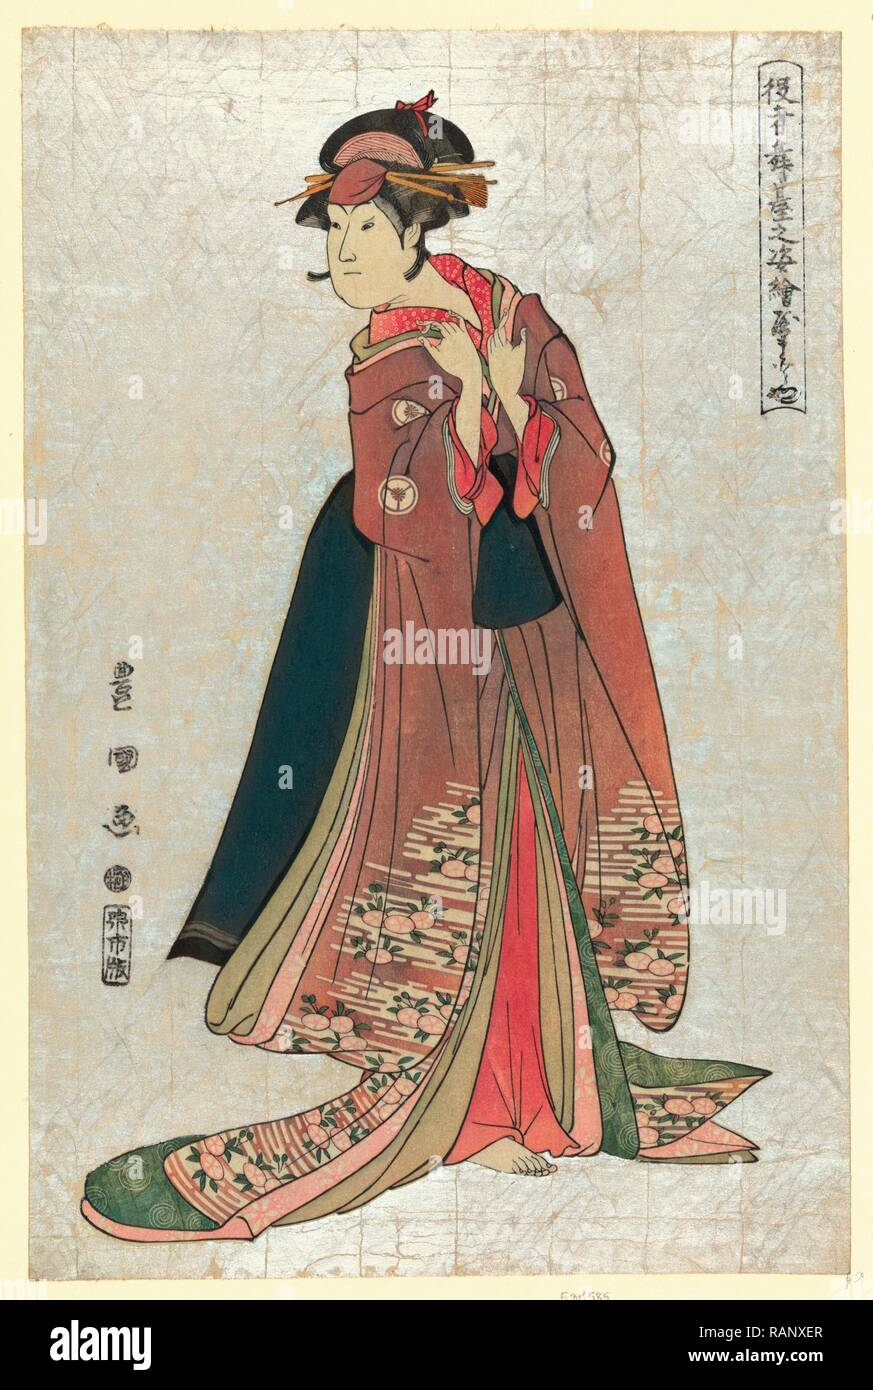 Yamatoya, Utagawa [1794, Printed Later], 1 Print: Woodcut, Color., Print Shows an Actor in the Role of a Woman reimagined - Stock Image